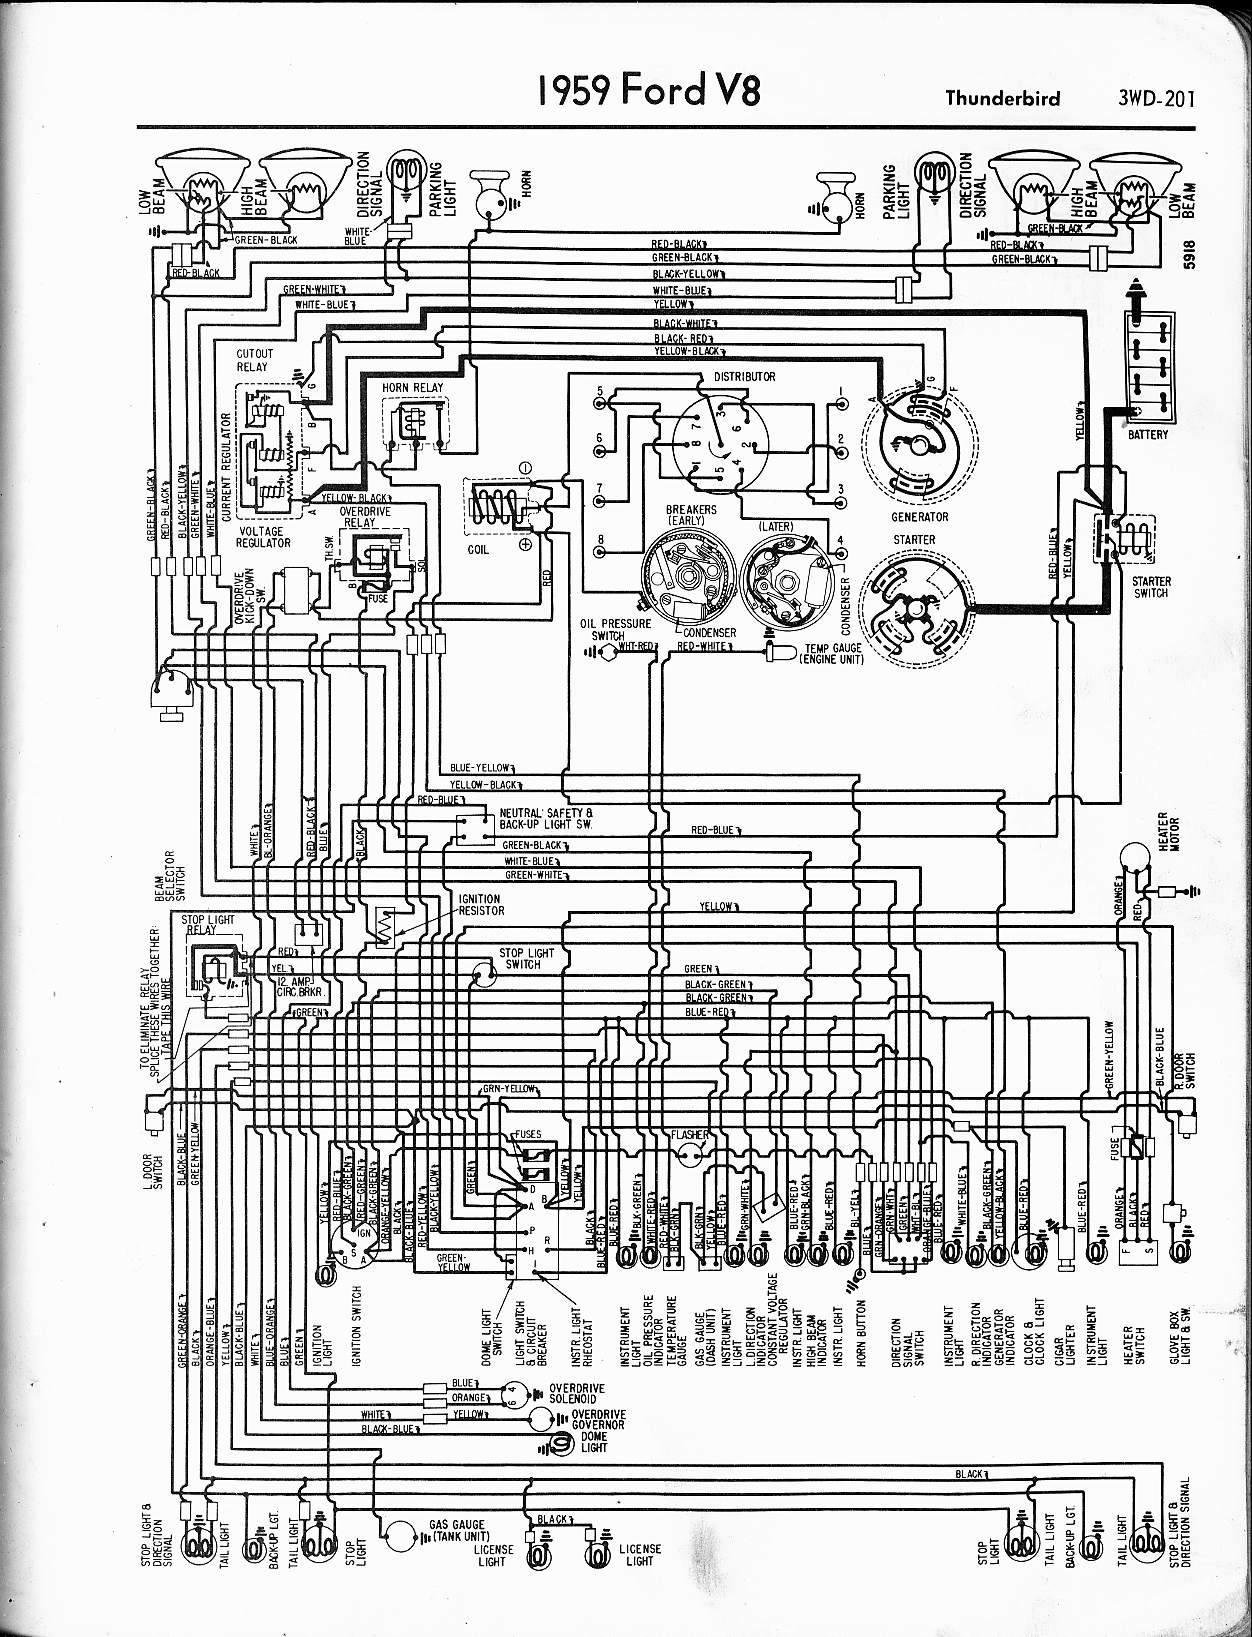 1955 ford fairlane wiring diagram warn winch bolt pattern generator schema diagram1955